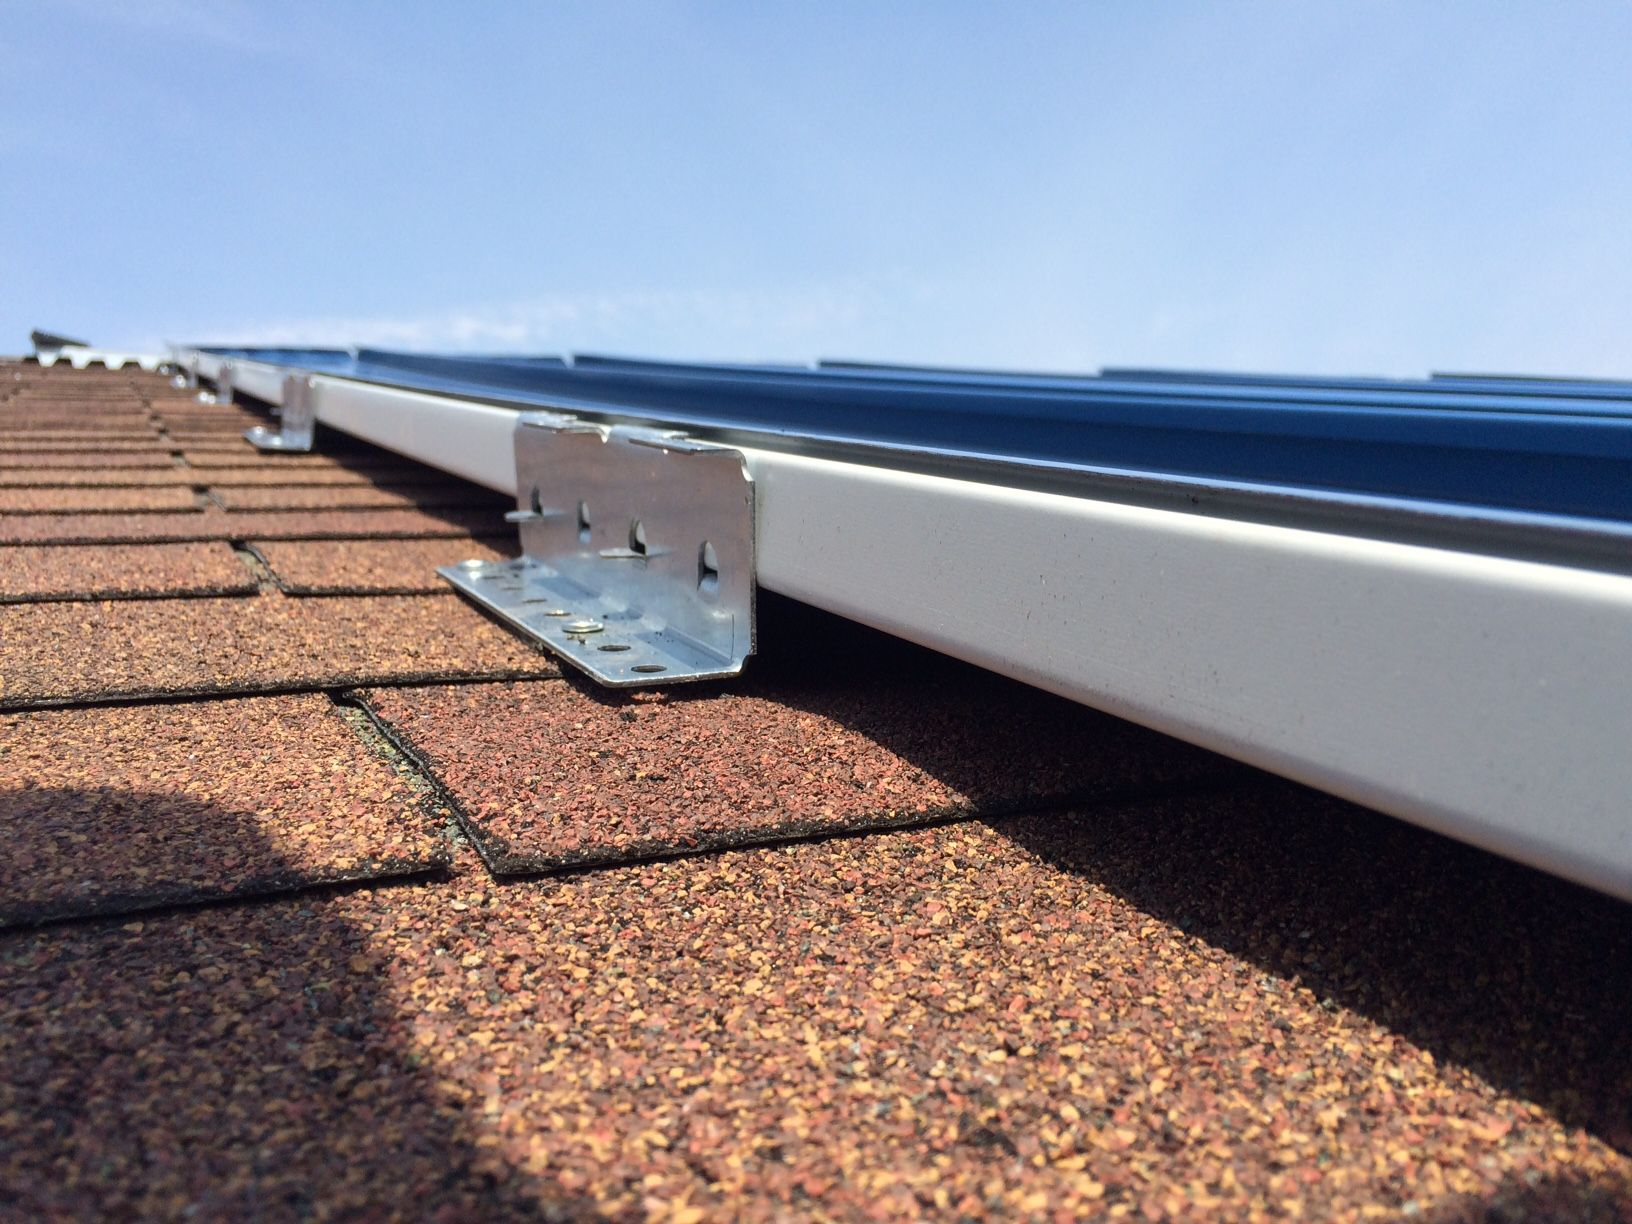 McElroy Metal Has Introduced A Quick And Efficient Method For Installing  Standing Seam Metal Roofing, Directly Over Asphalt Shingles, Without A  Tear Off.